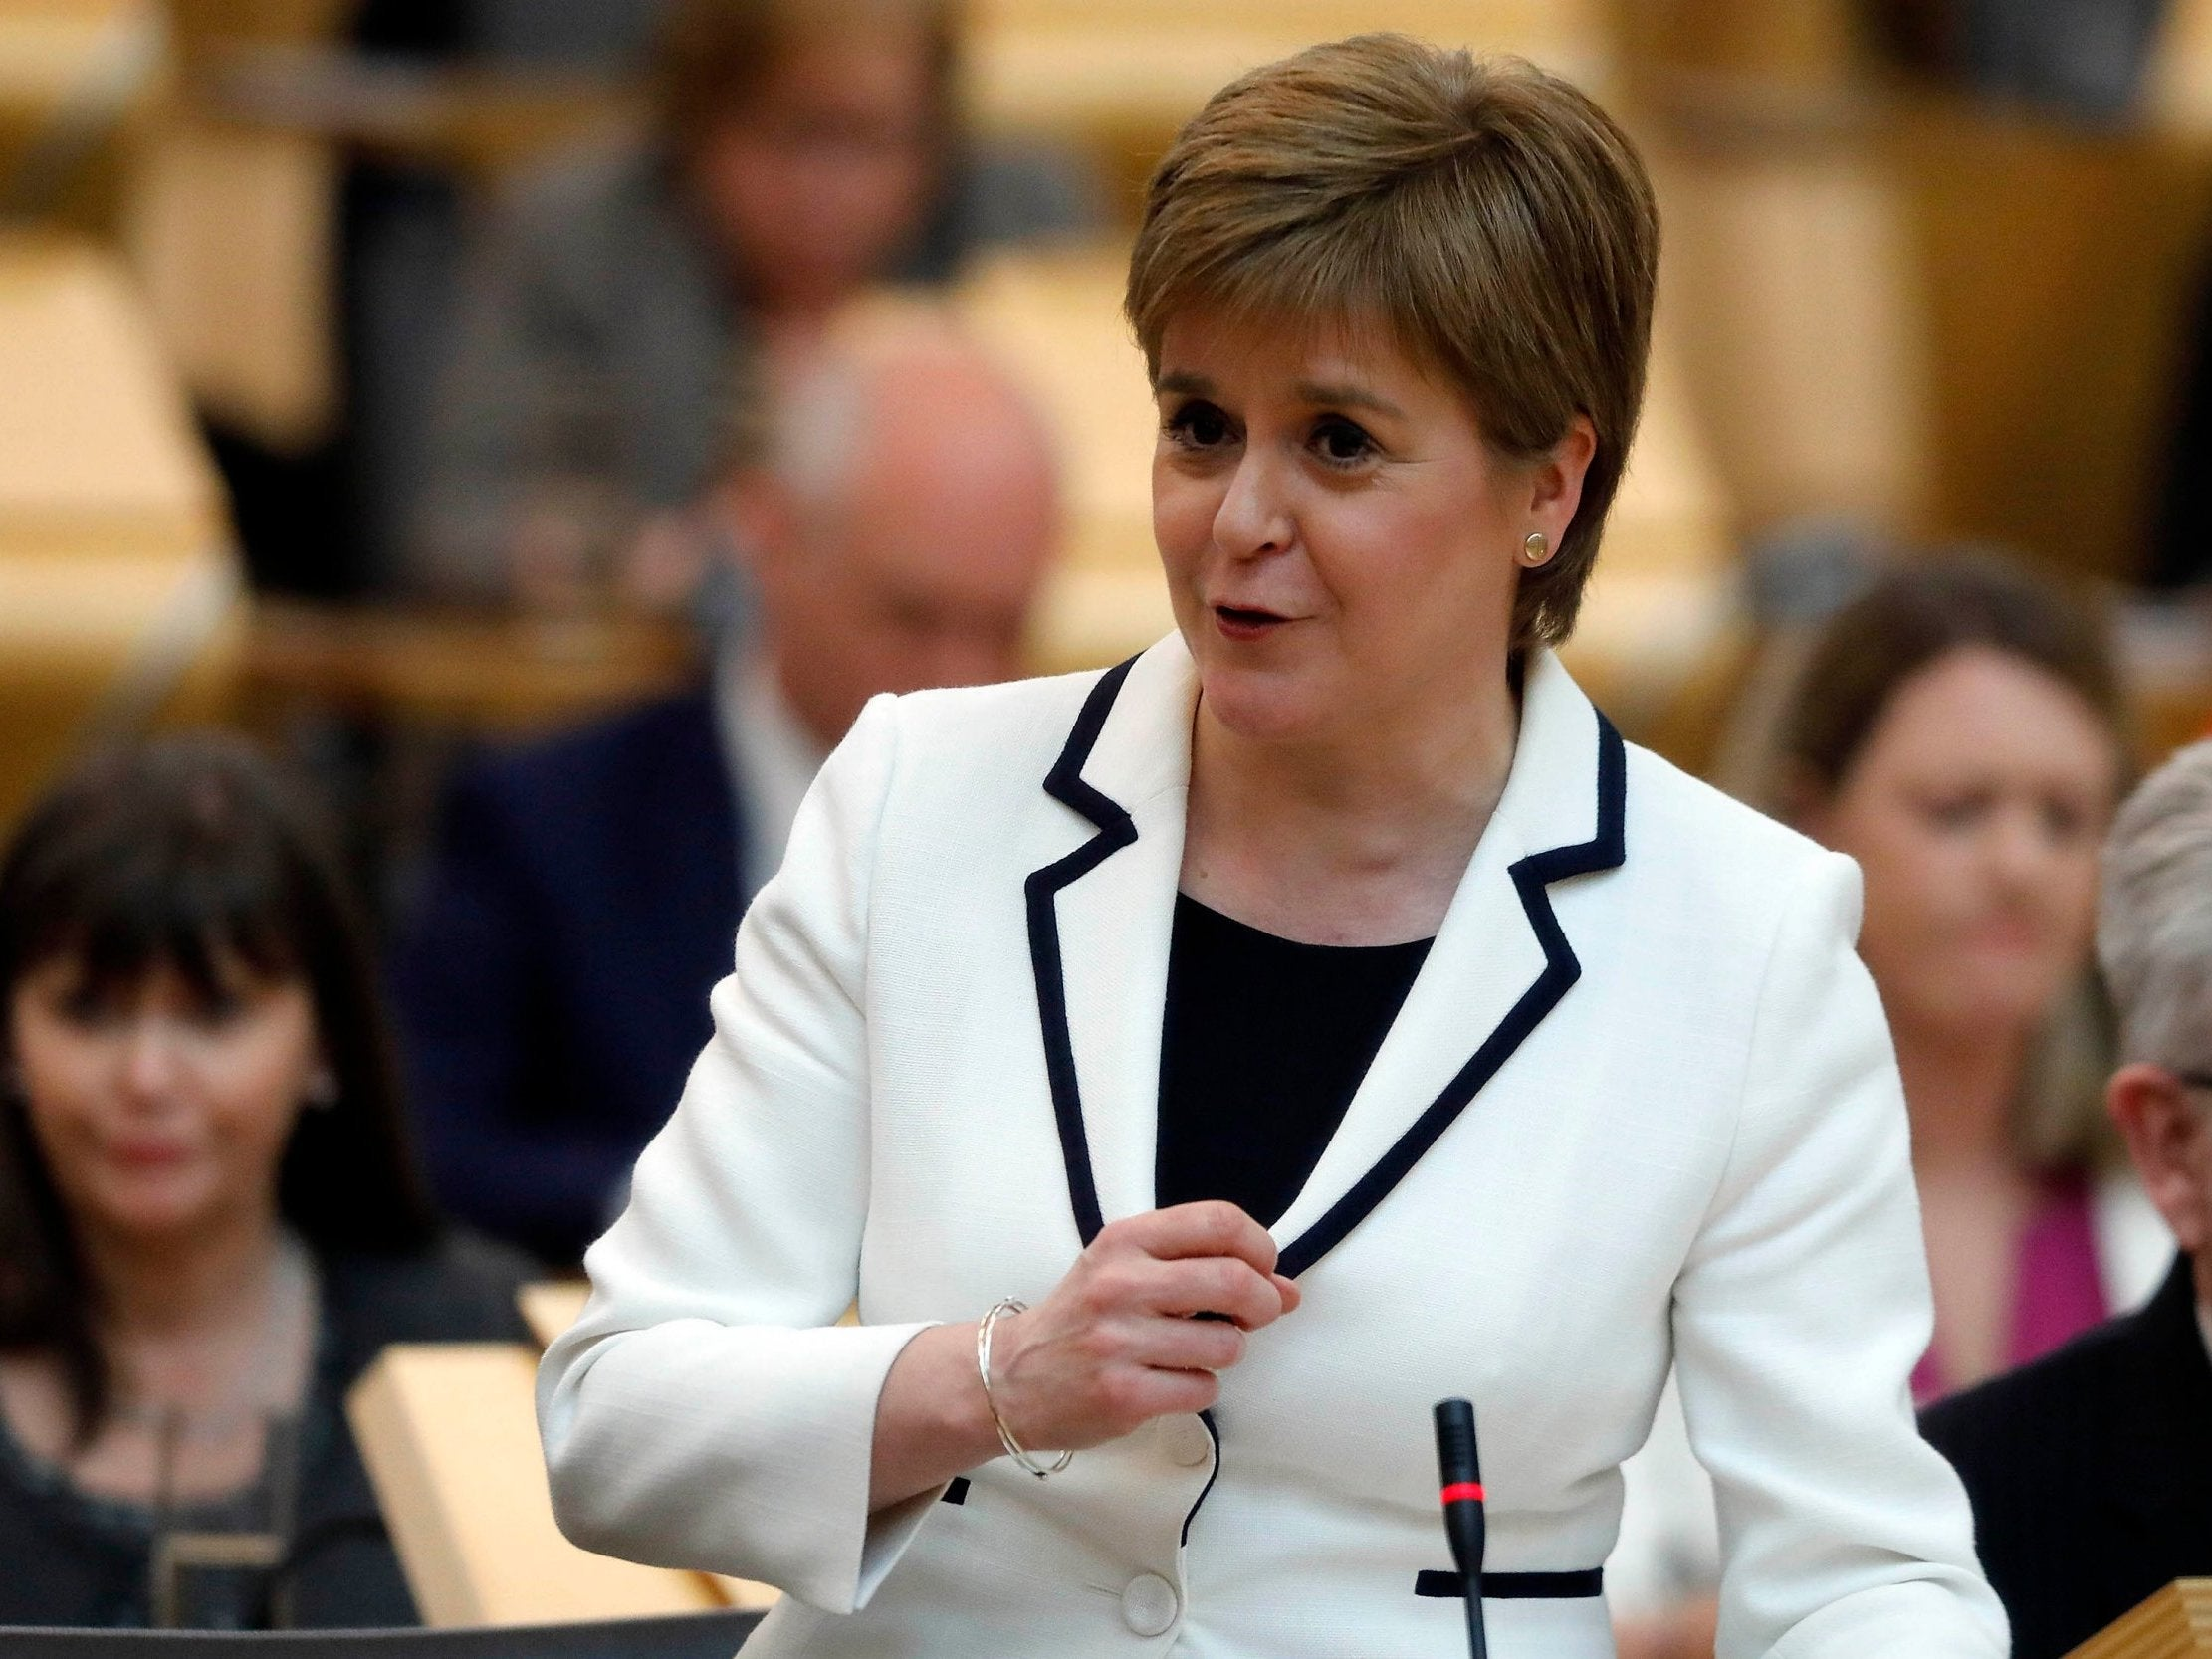 If Scotland holds another independence referendum, it'll be more disastrous than Brexit